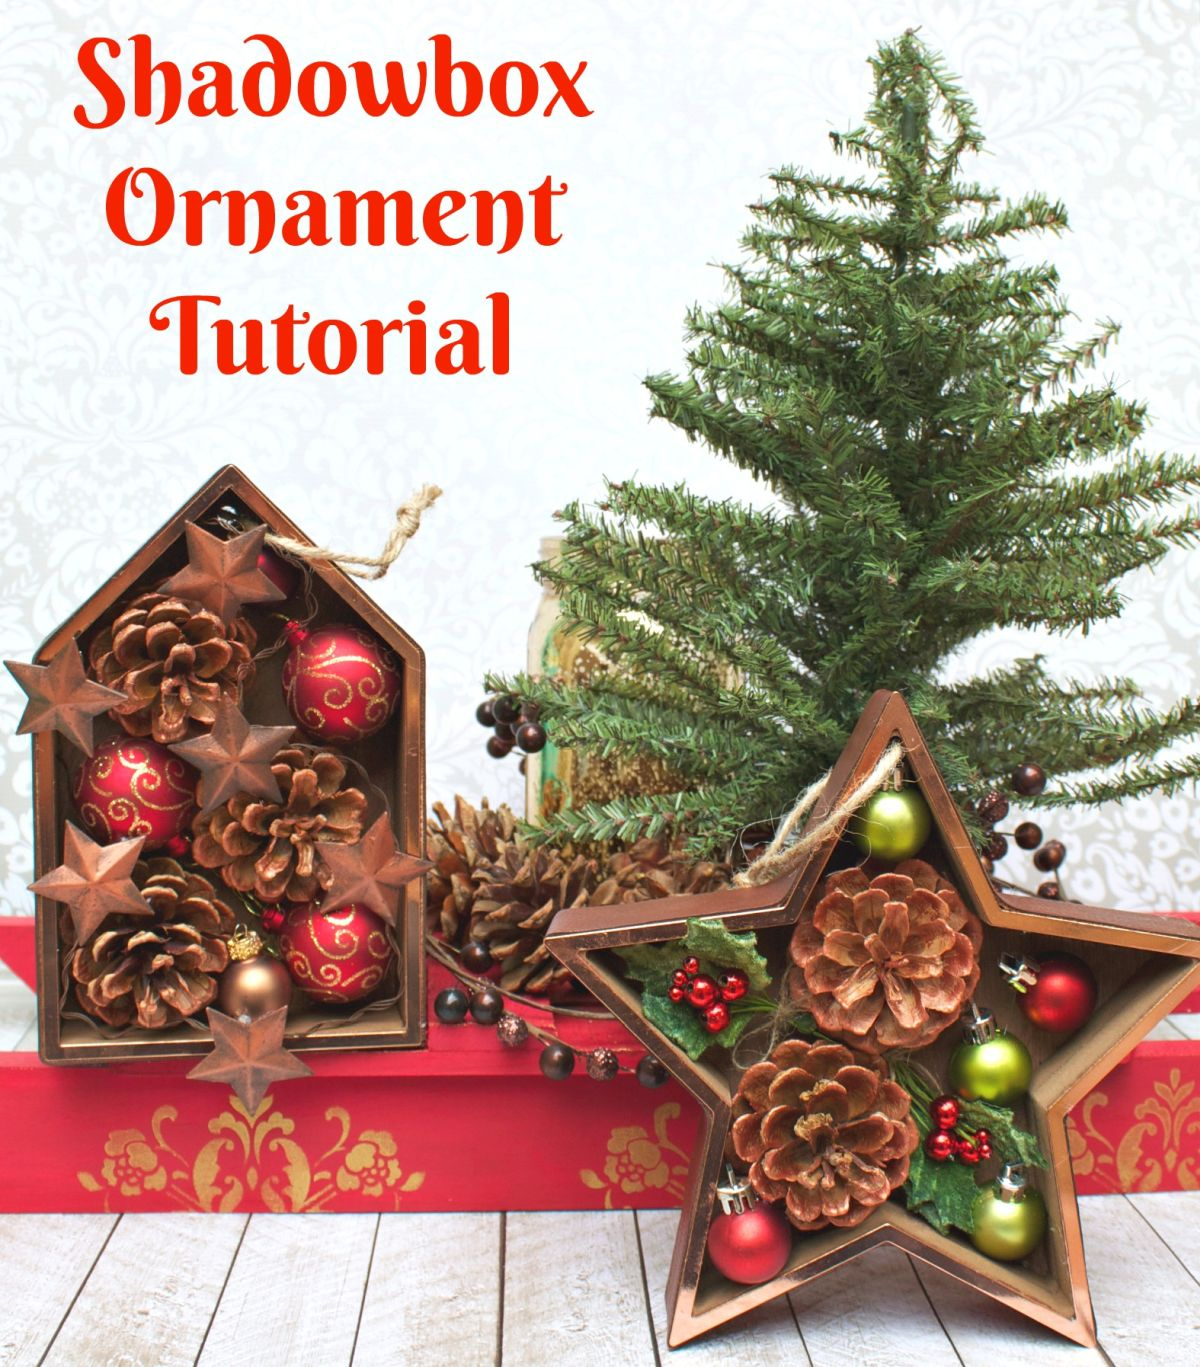 Shadowbox Christmas Ornament Tutorial